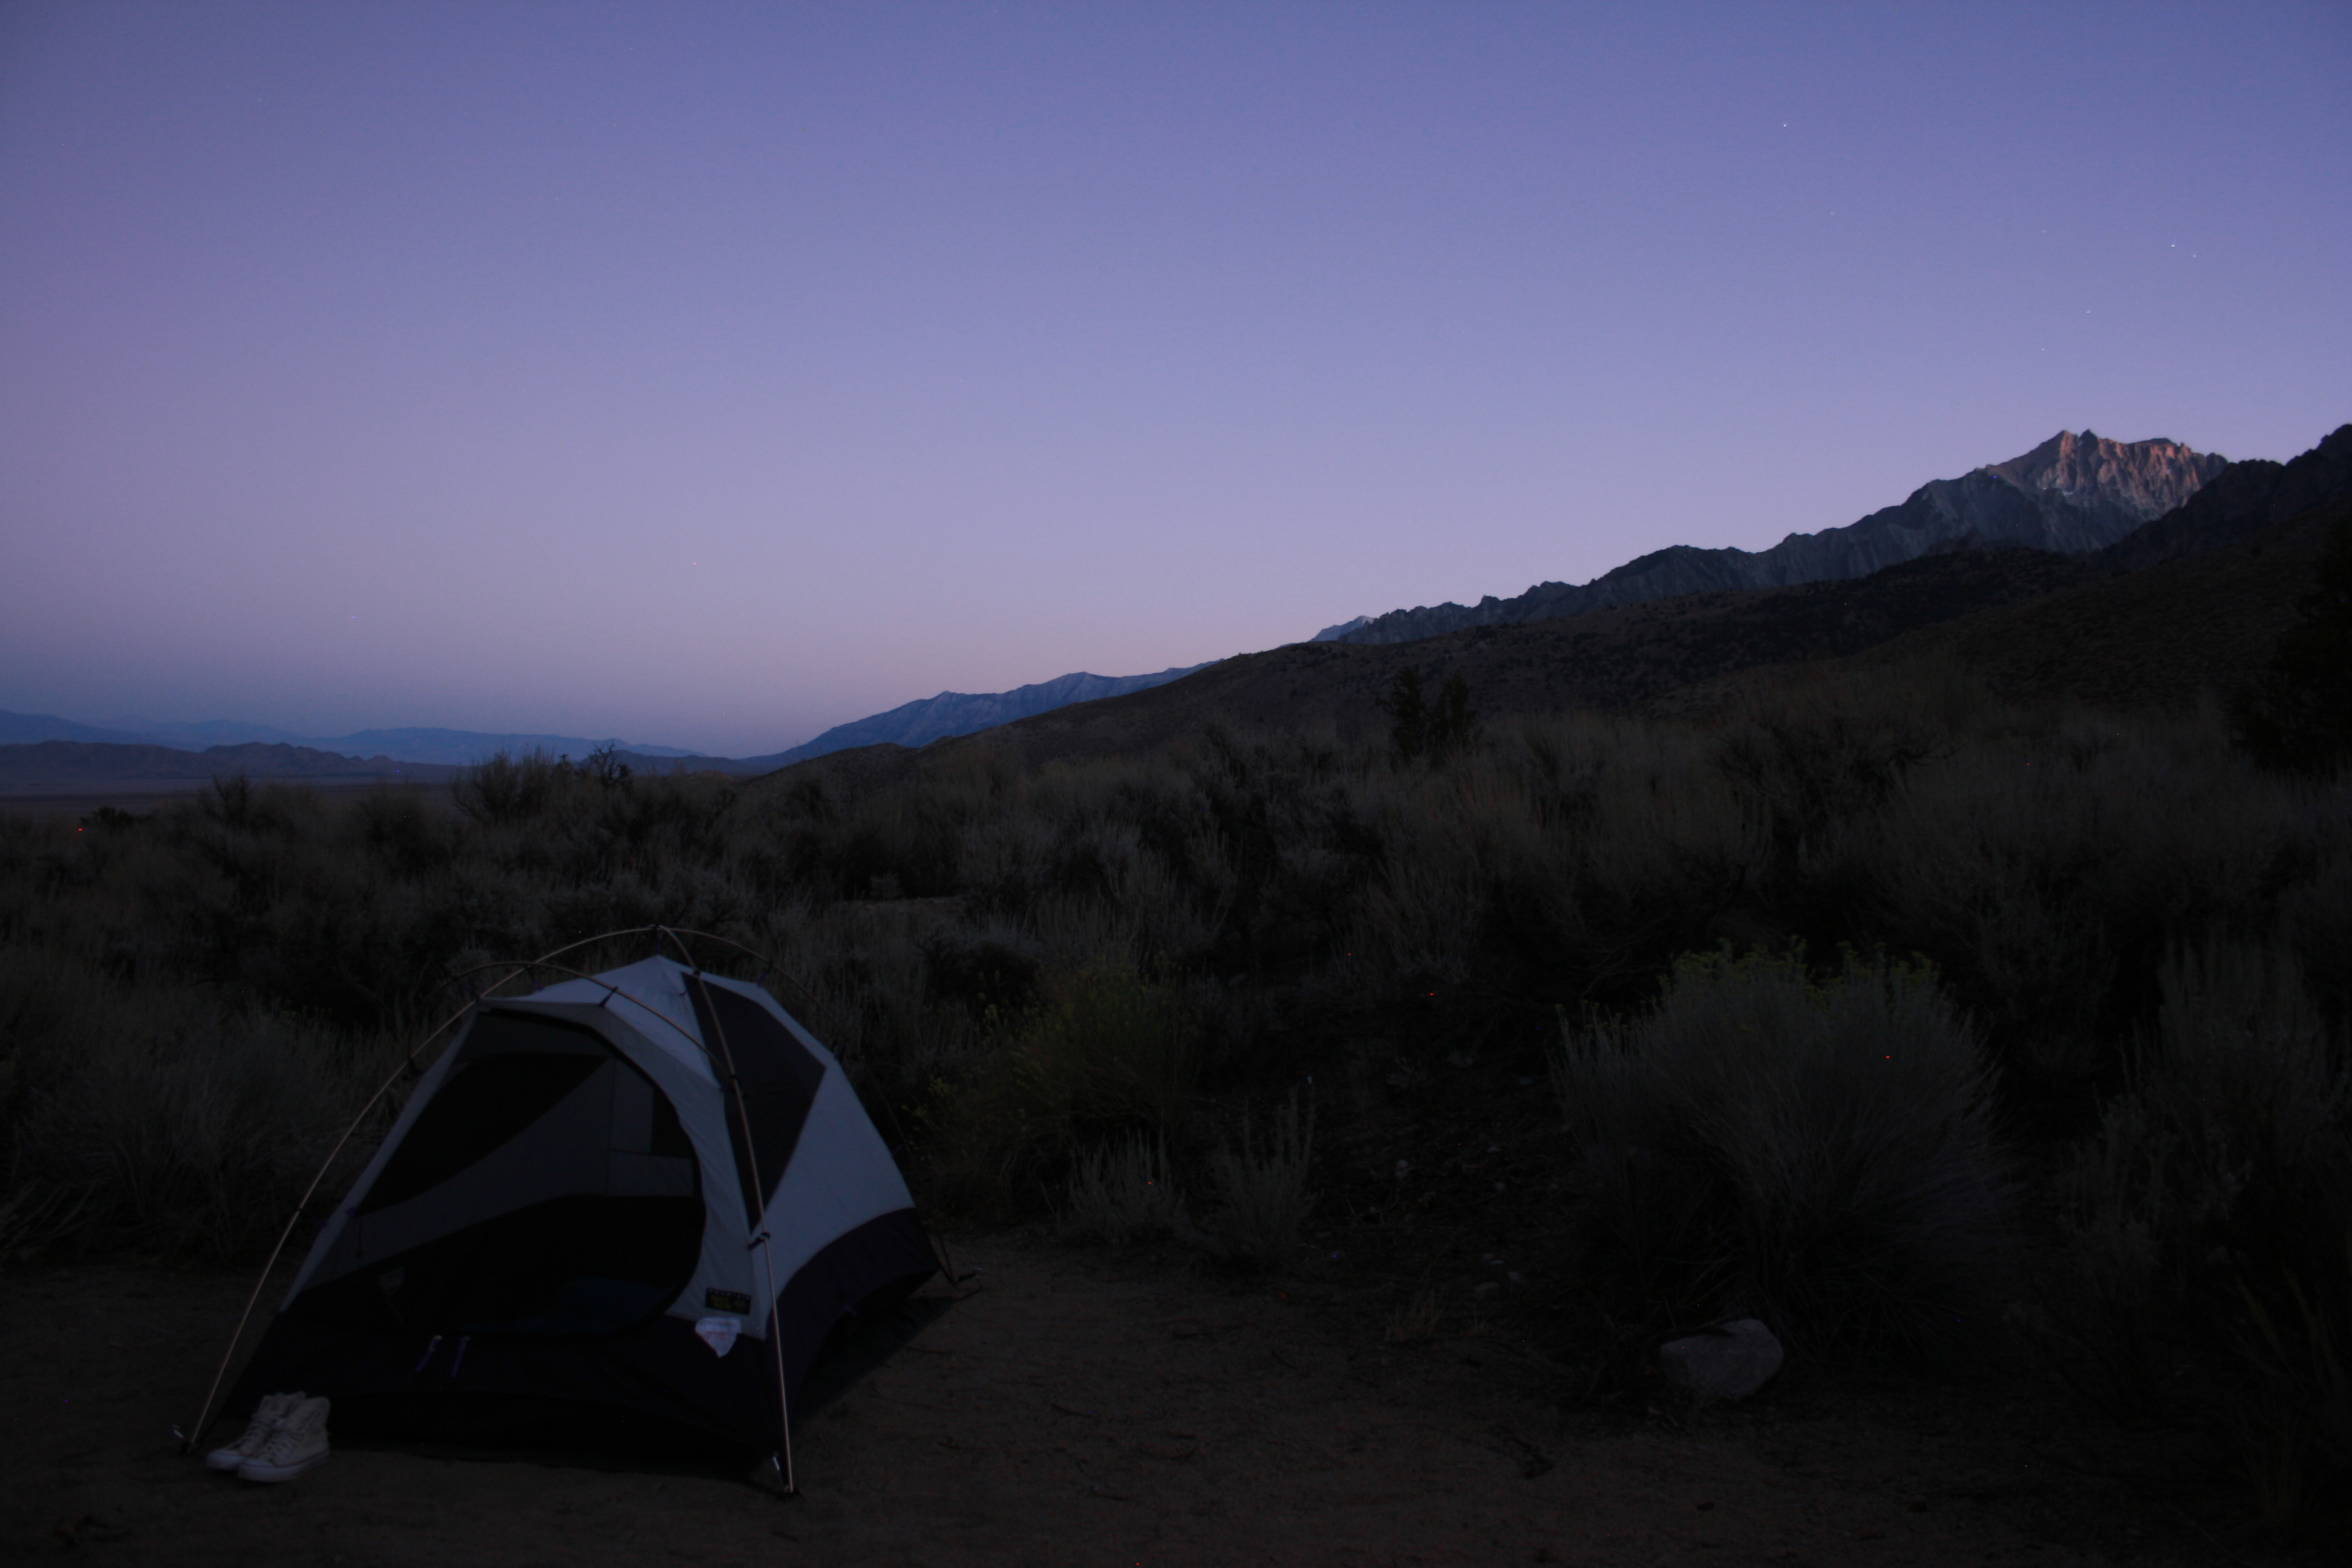 Early to bed, early to rise, camping near Independence